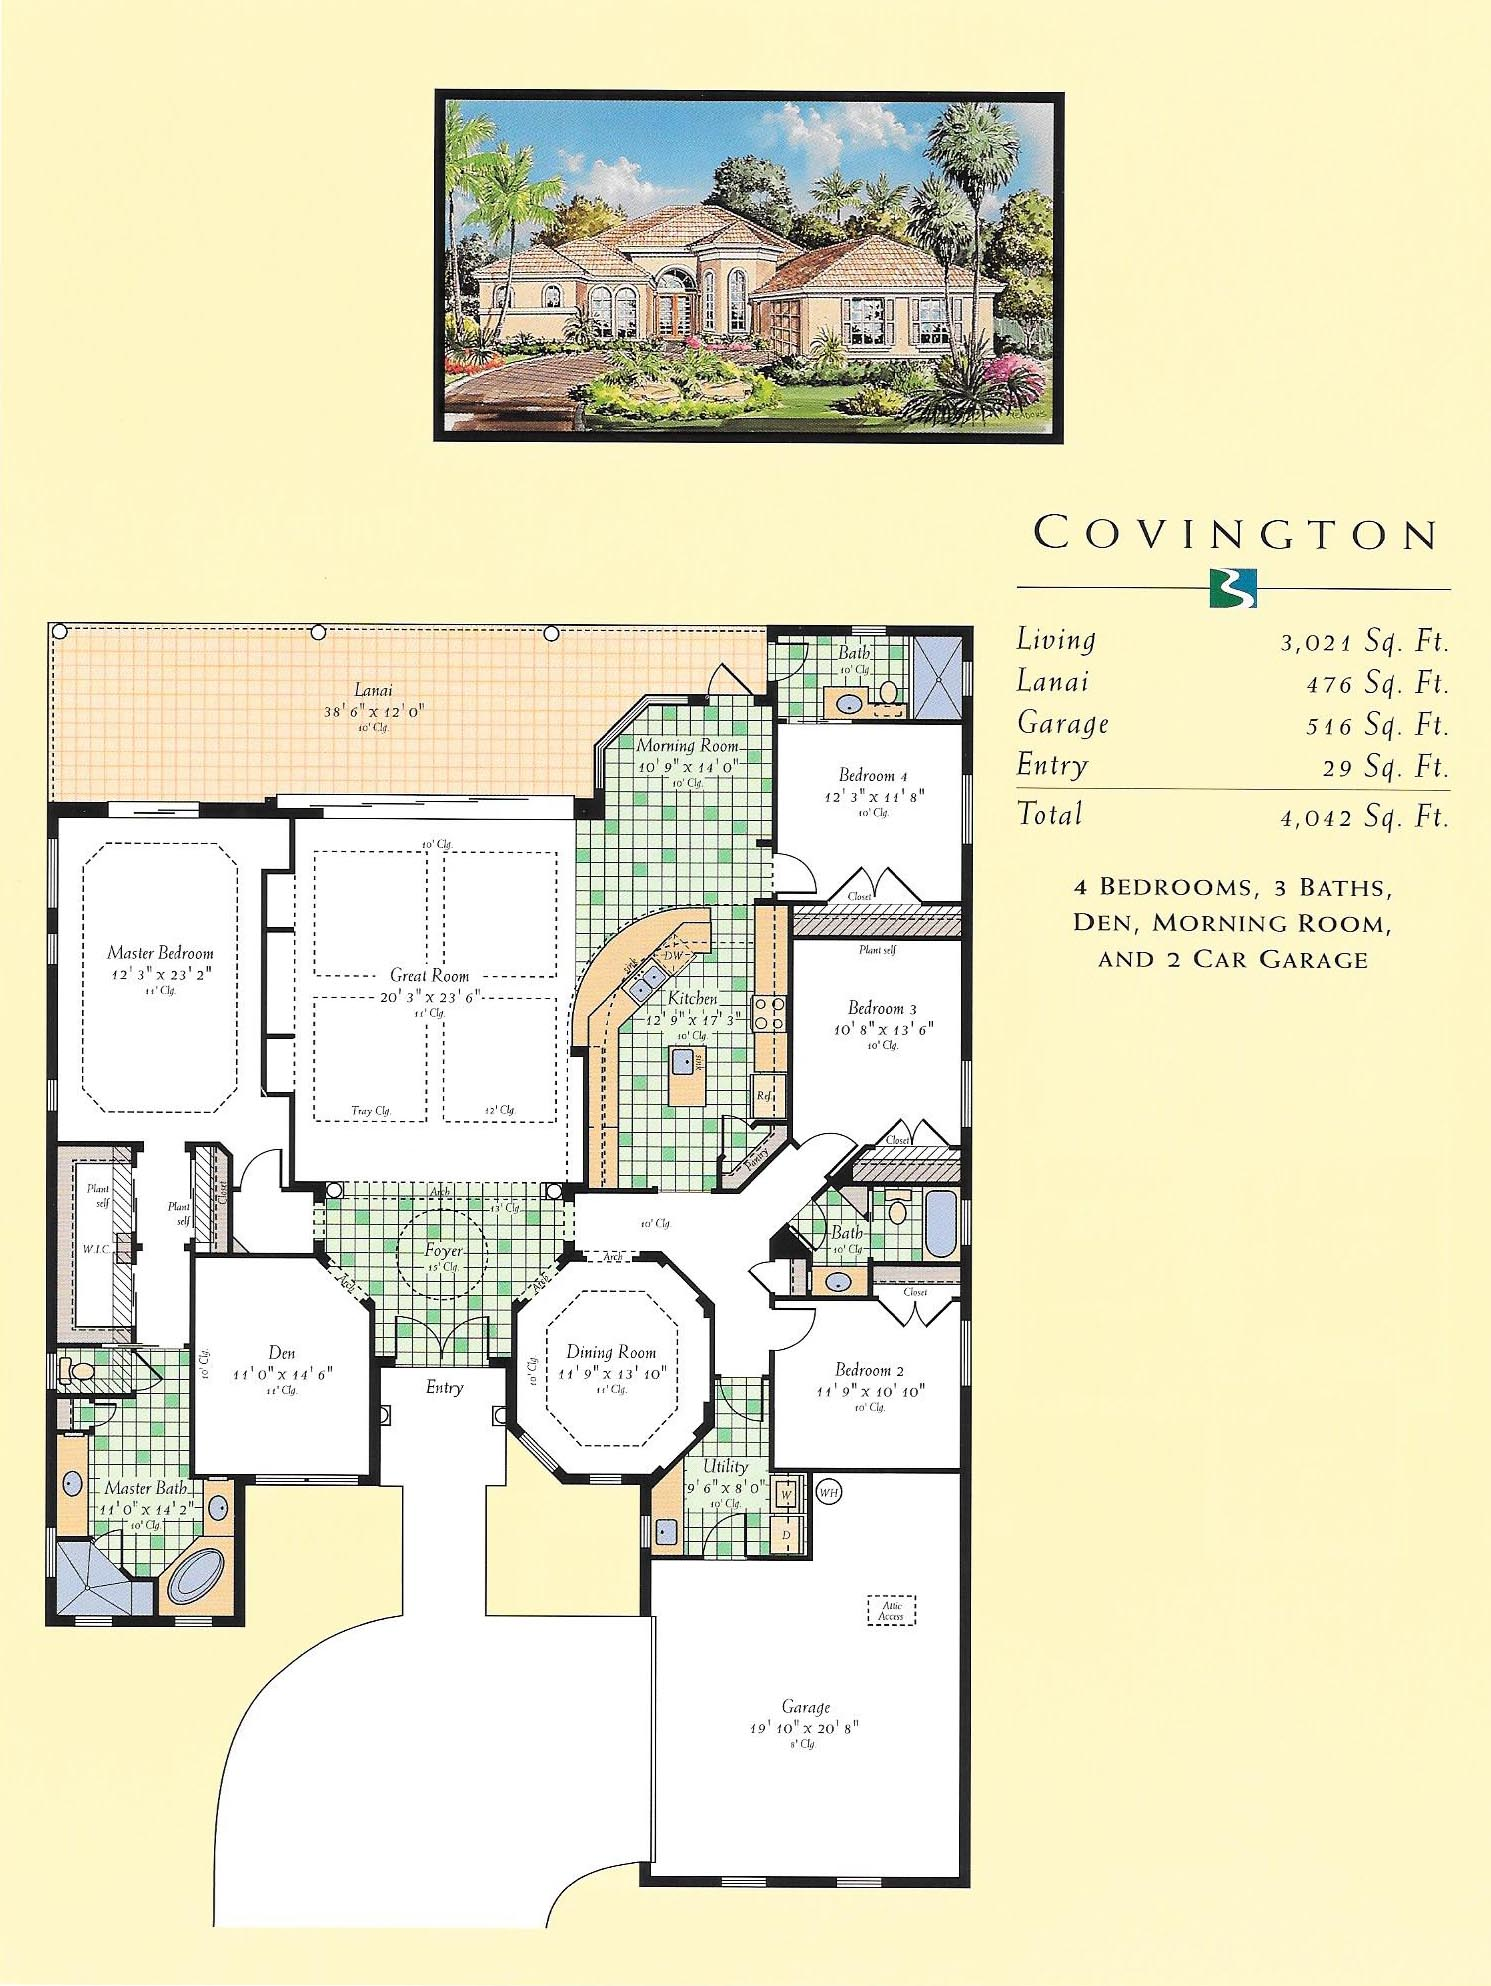 Covington floor plan for Wrap house covington